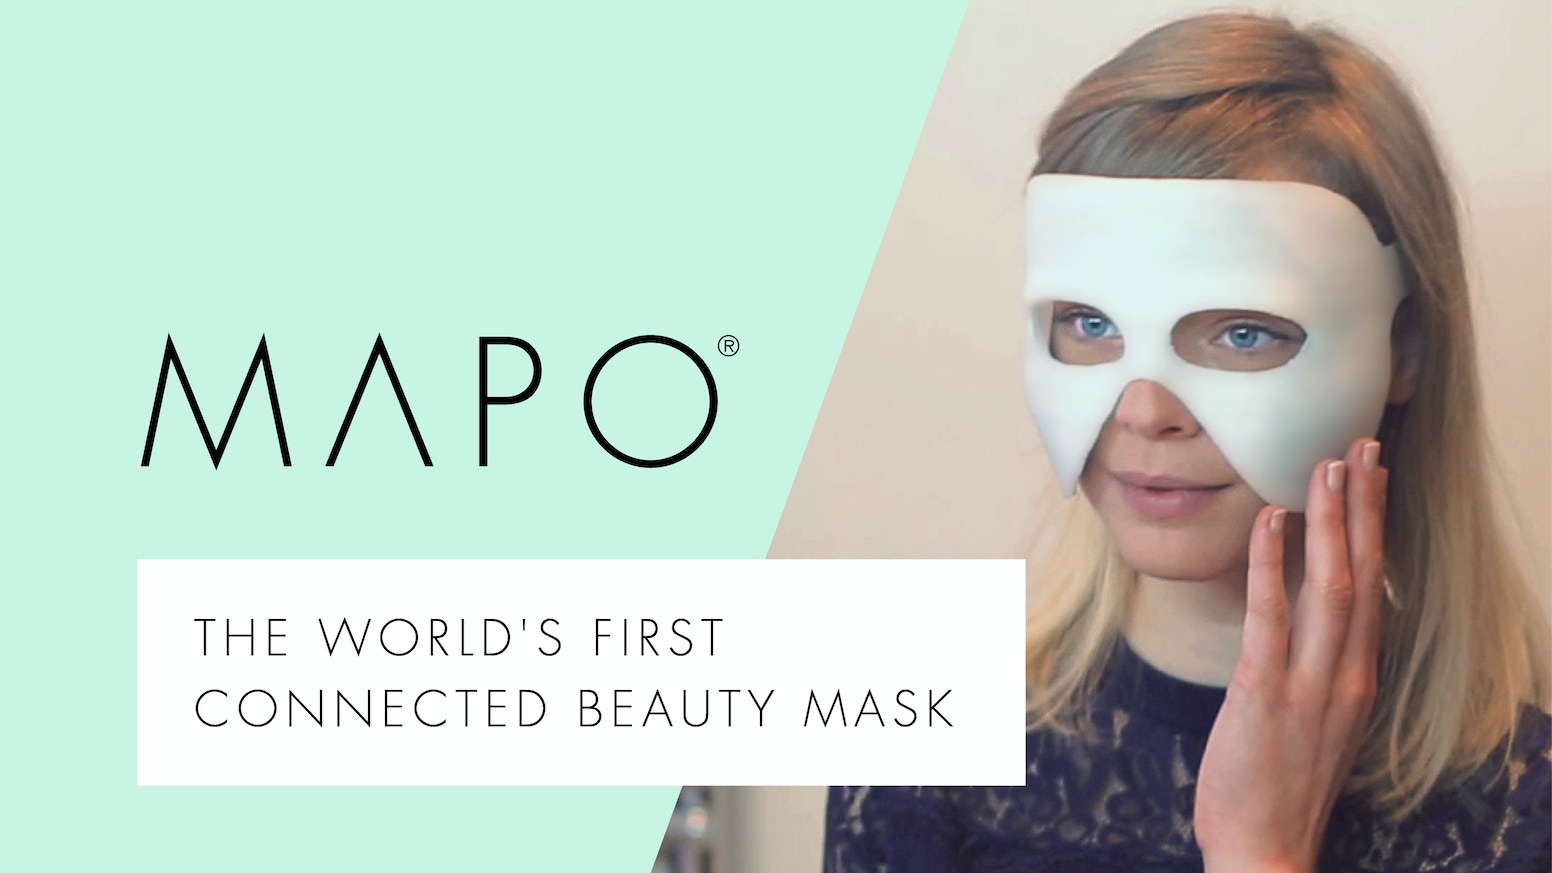 Now you can better understand your skin and boost its moisture with our patented Mask and its companion App!